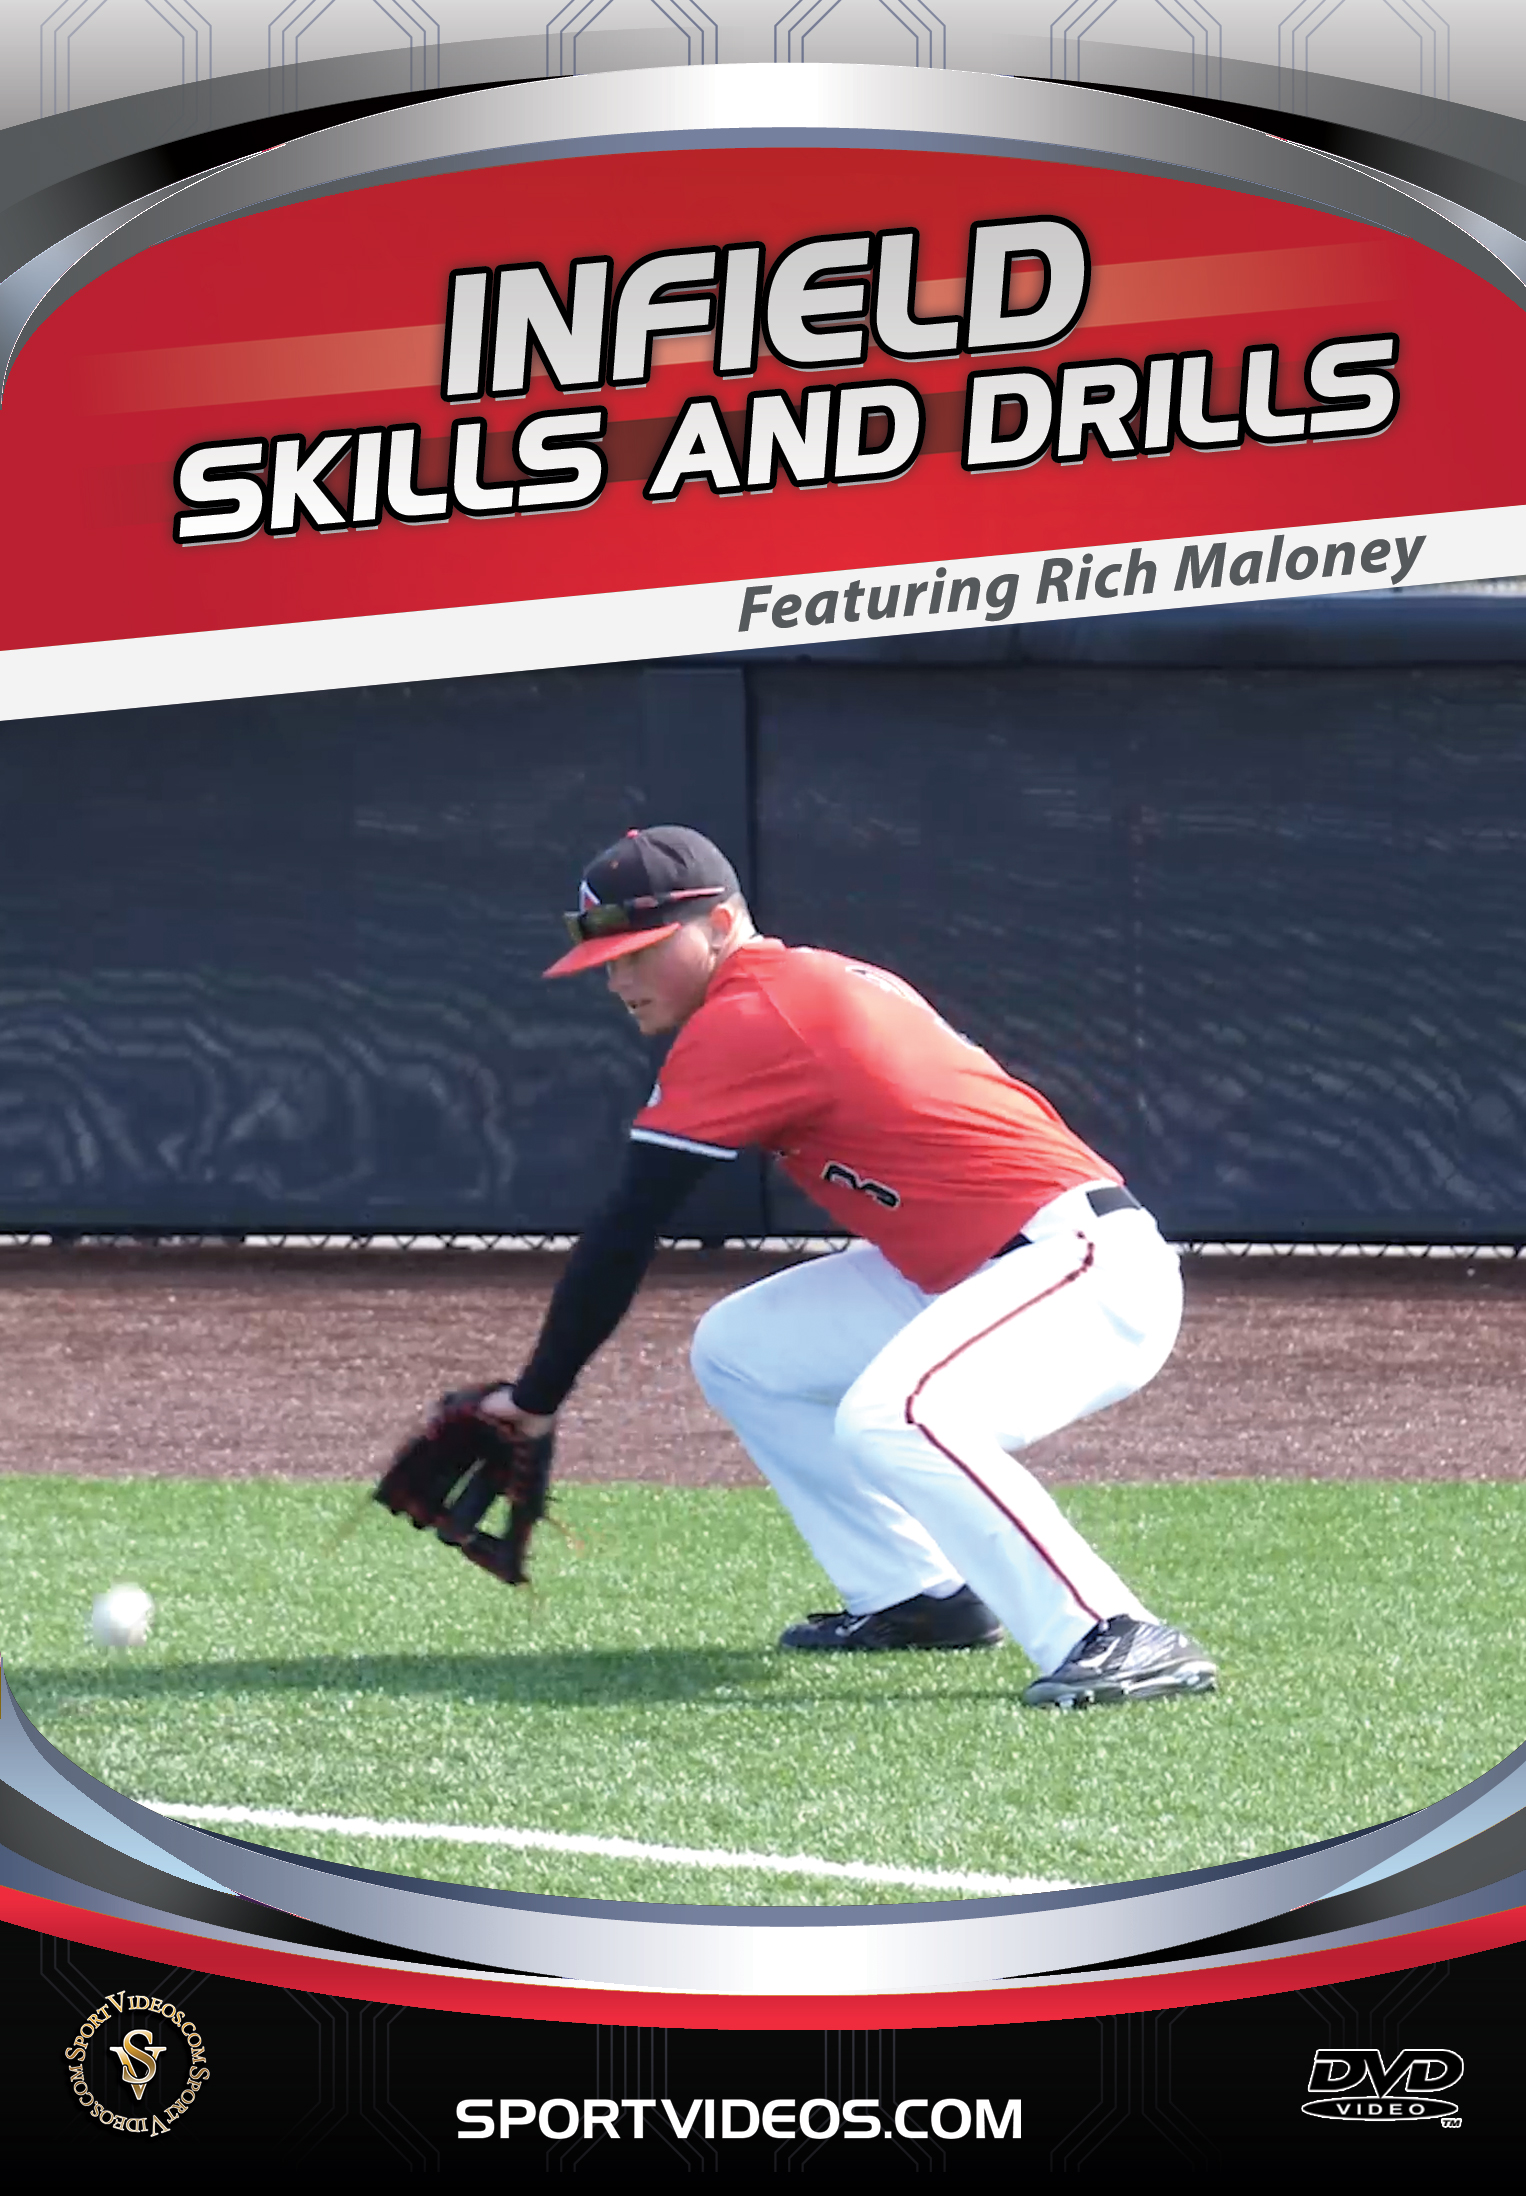 Infield Skills and Drill DVD or Download - Available March 2019